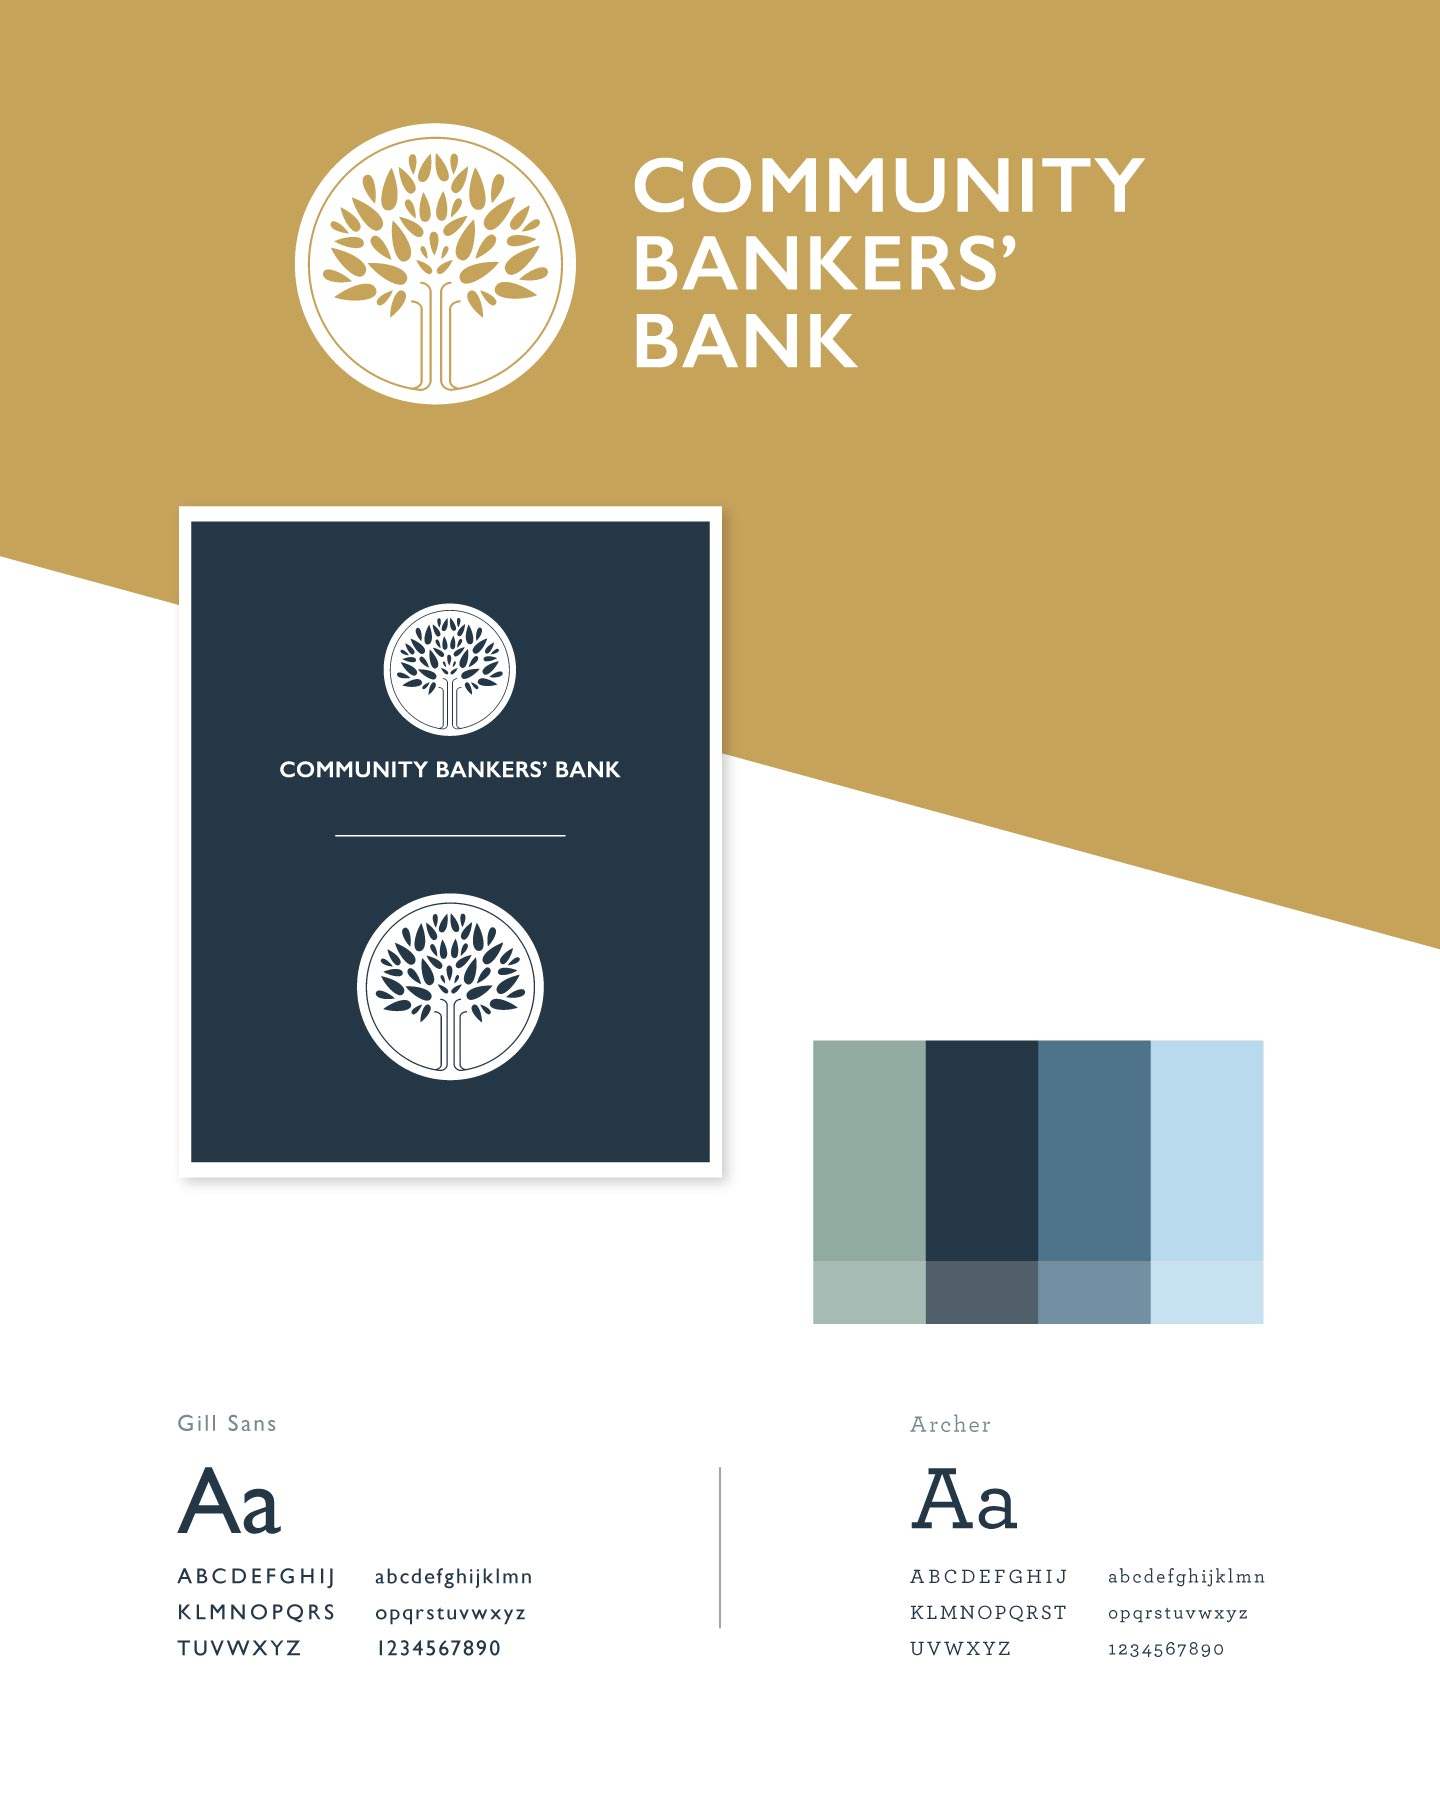 Logo, colors, and fonts for Community Bankers' Bank